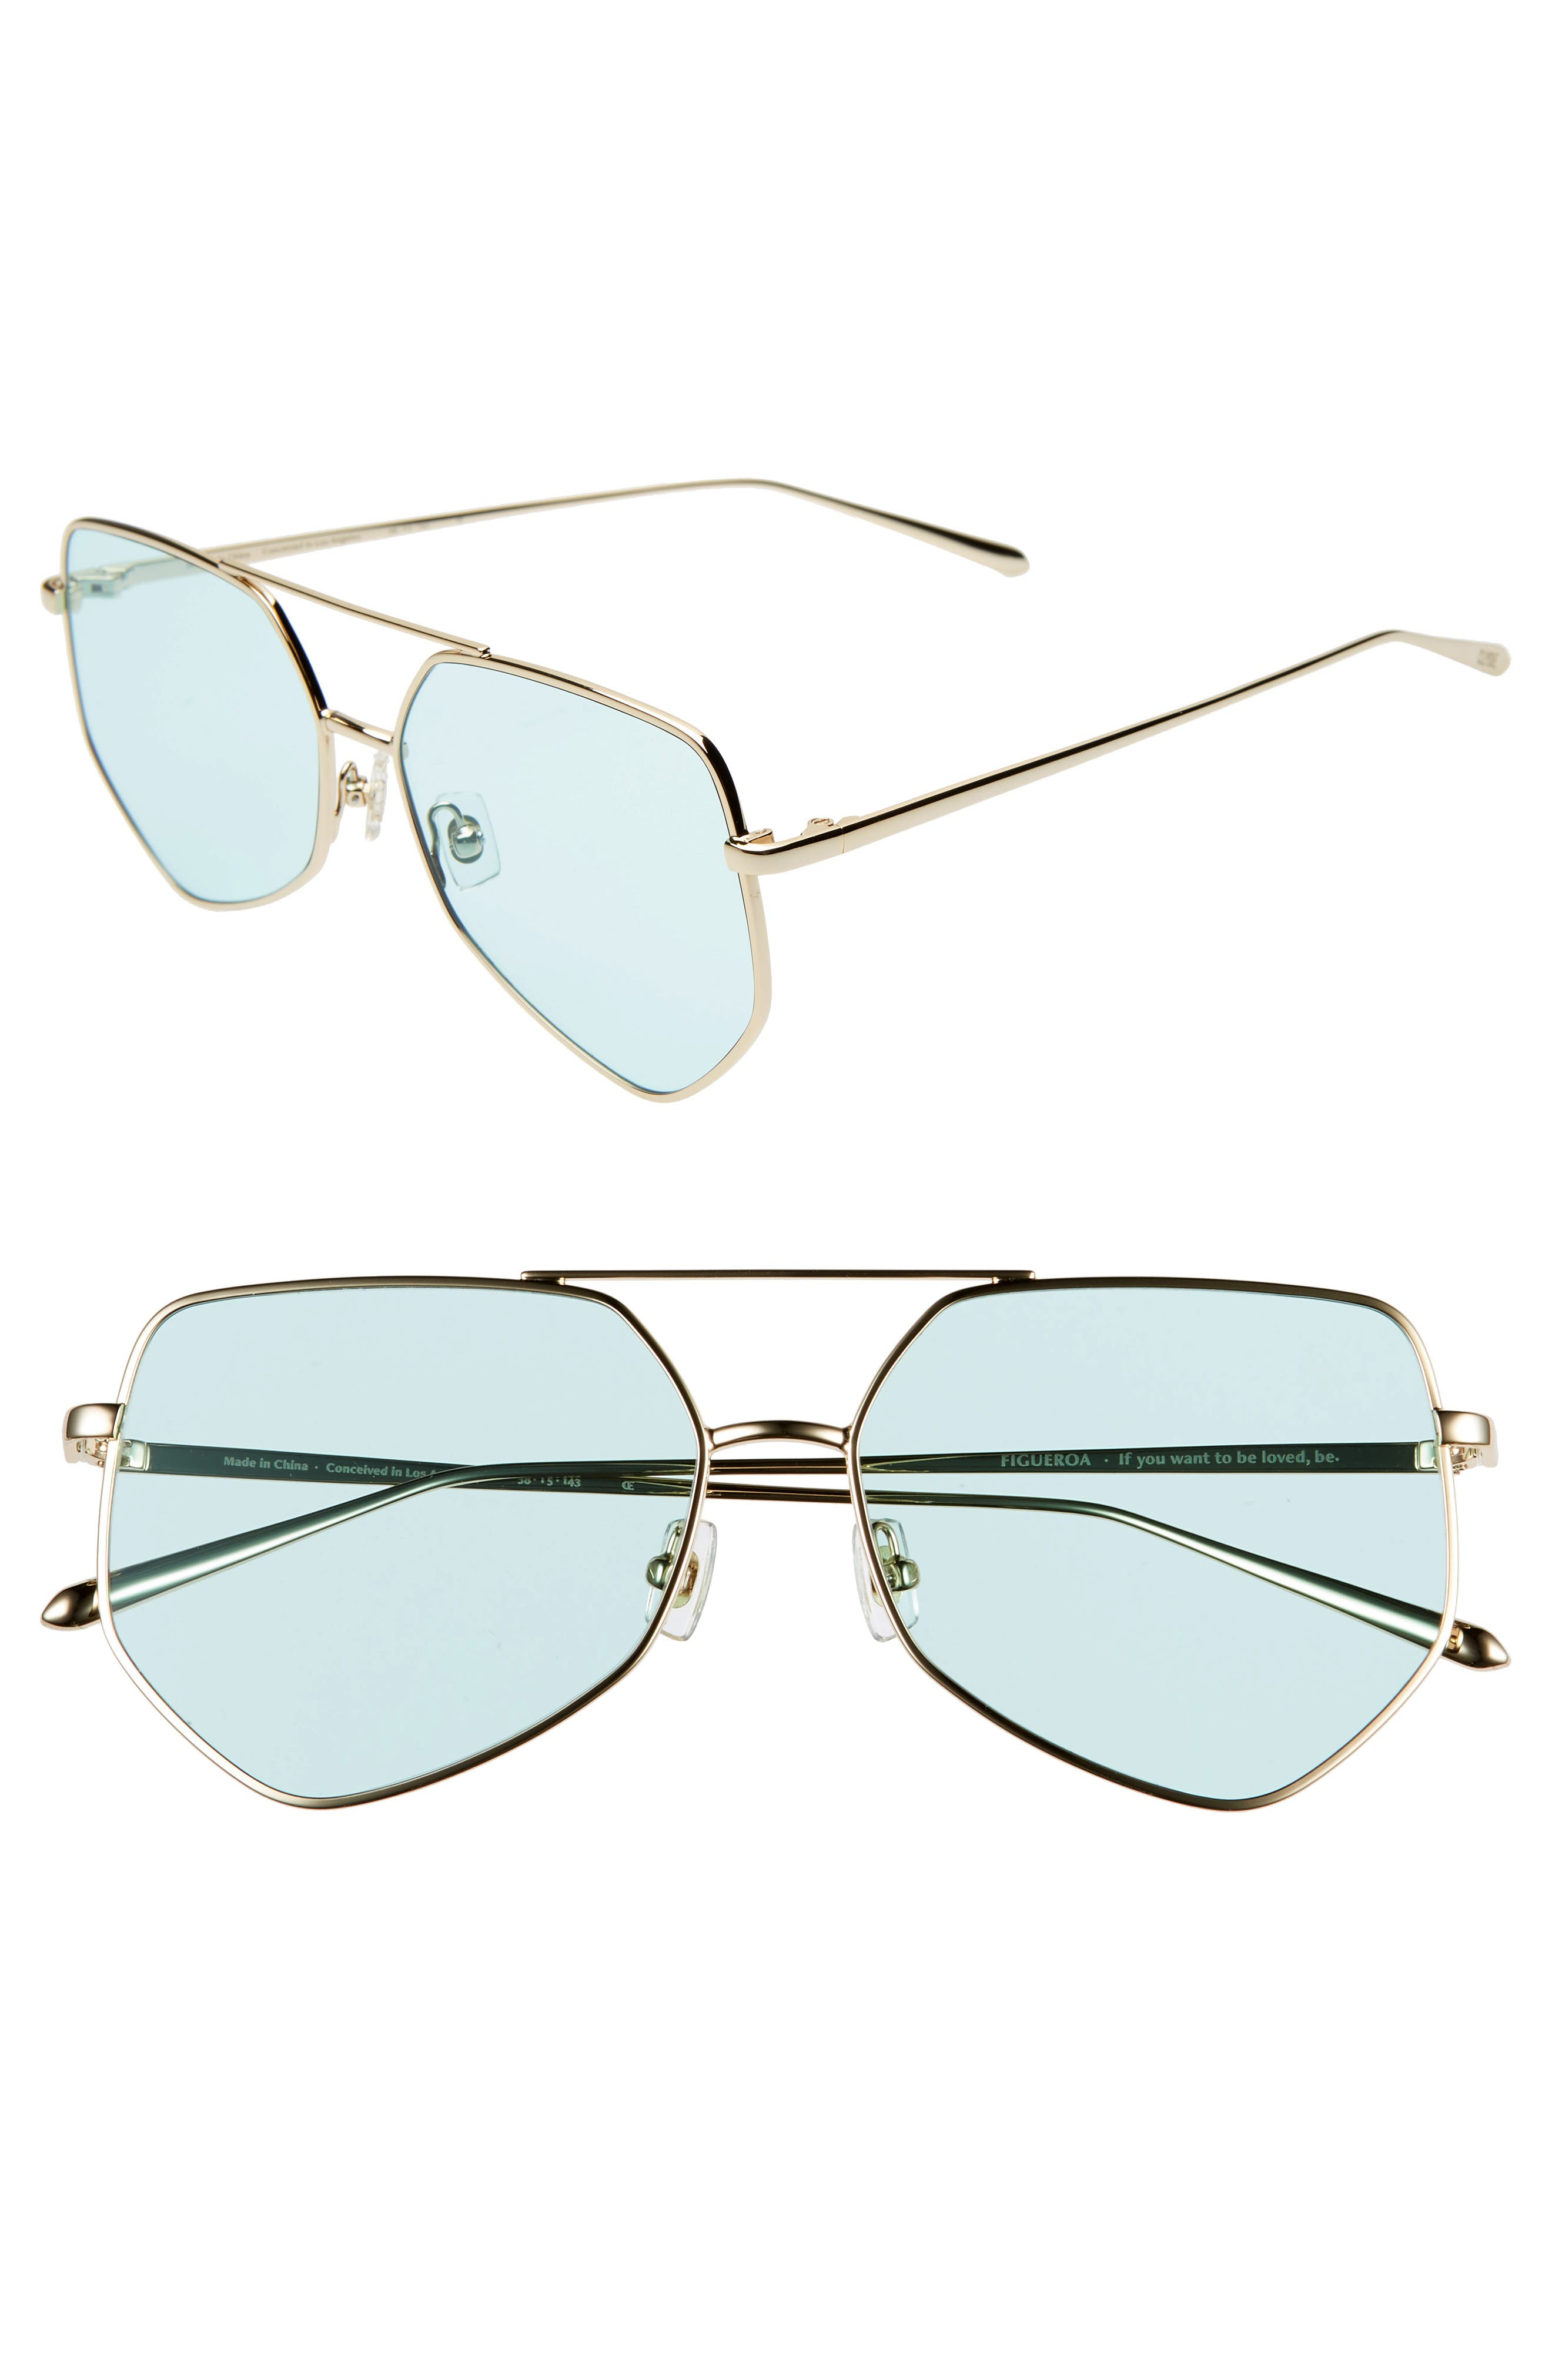 0d890700078 Bonnie Clyde Sunglasses for Women